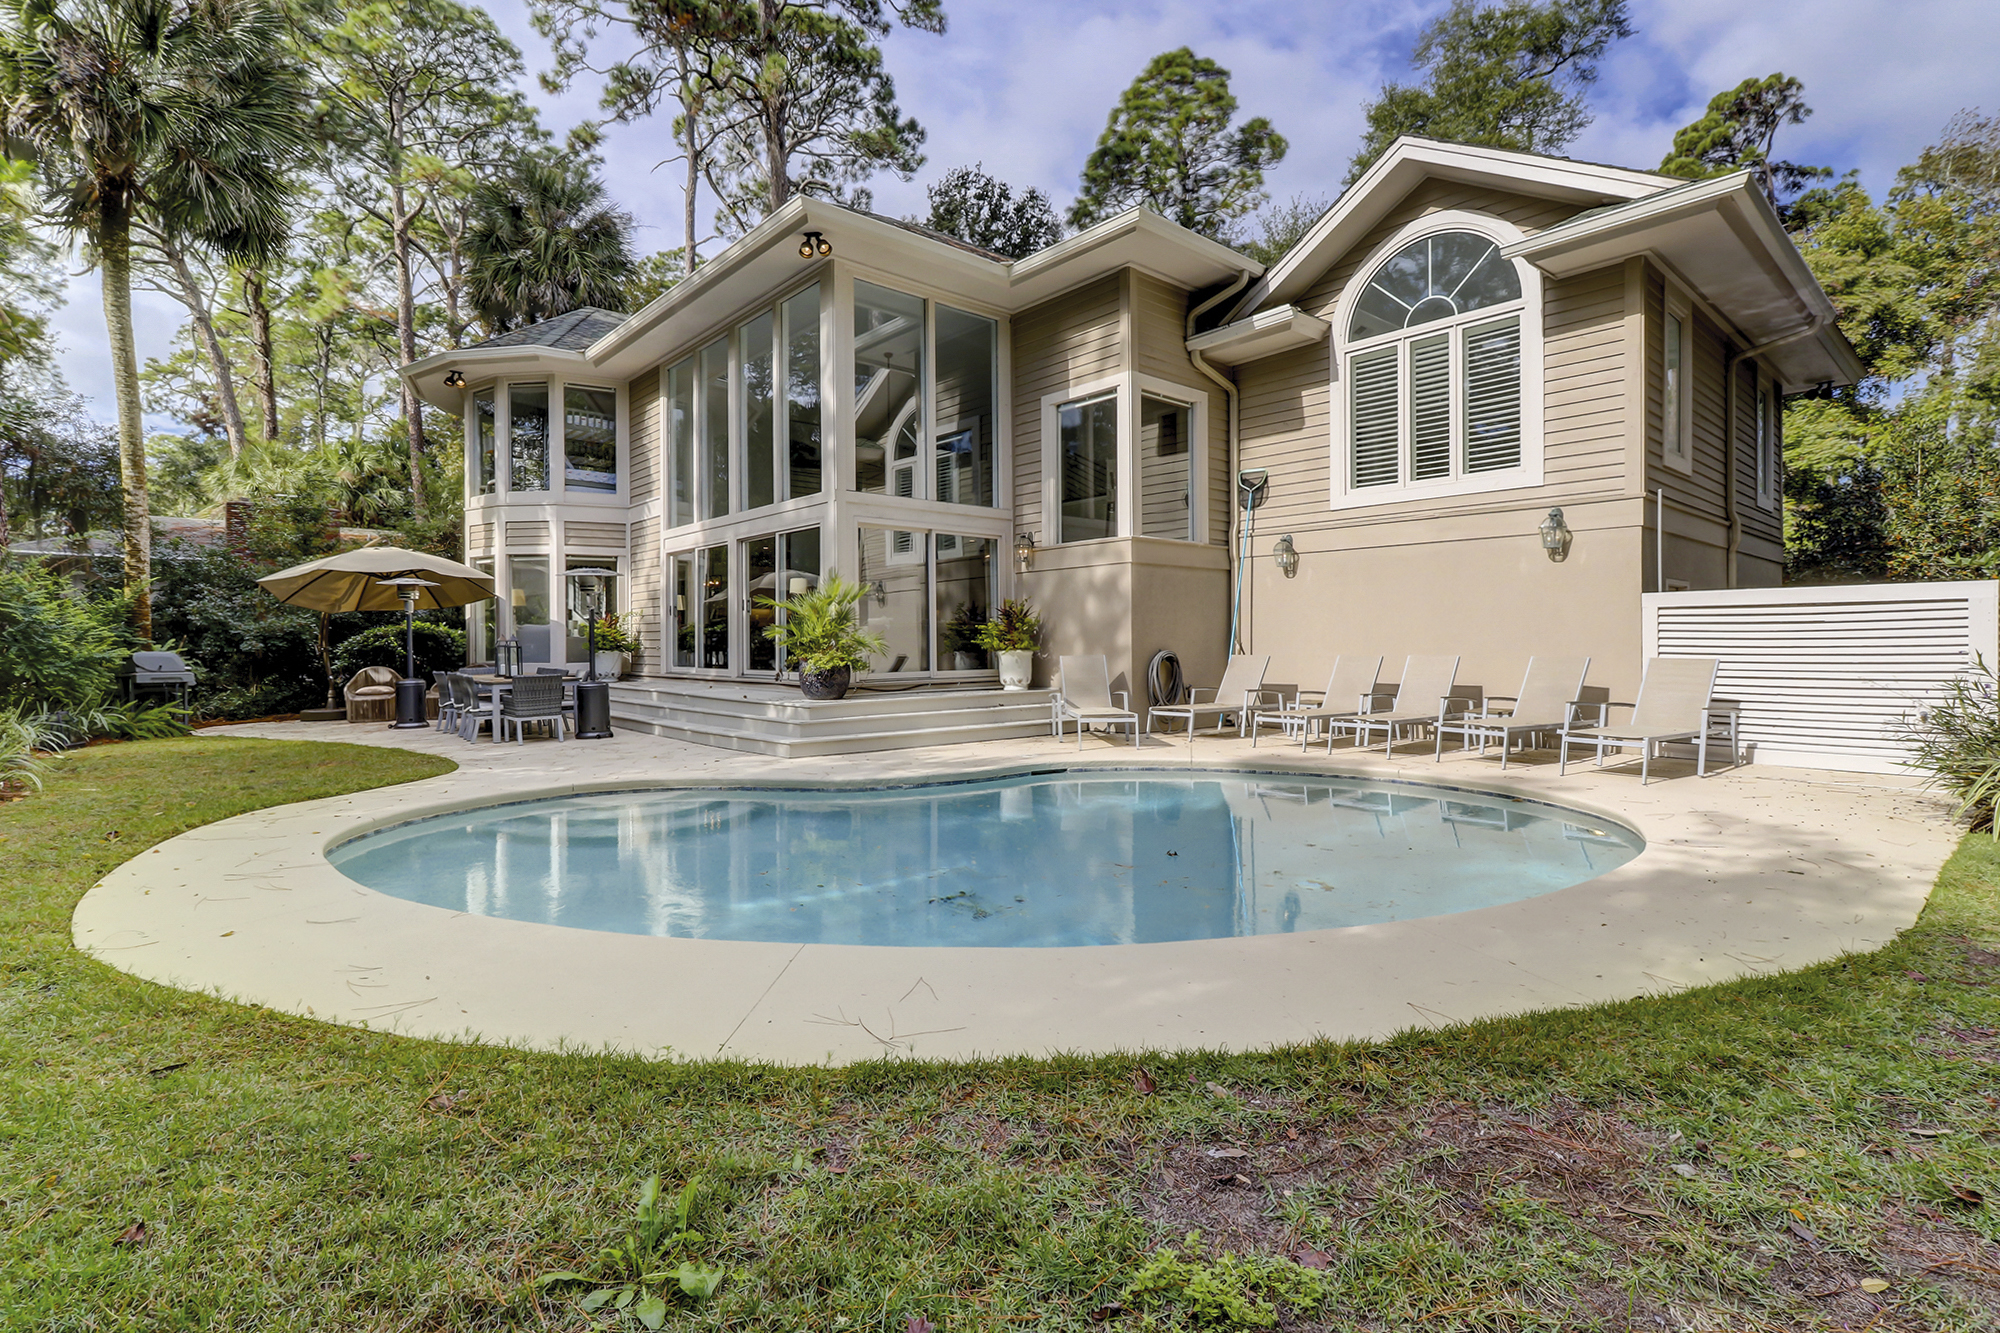 57 North Sea Pines Place To Stay On Vacation 4 Bedroom 4 Full Bathroom Hilton Head Island South Carolina 144313 Find Rentals